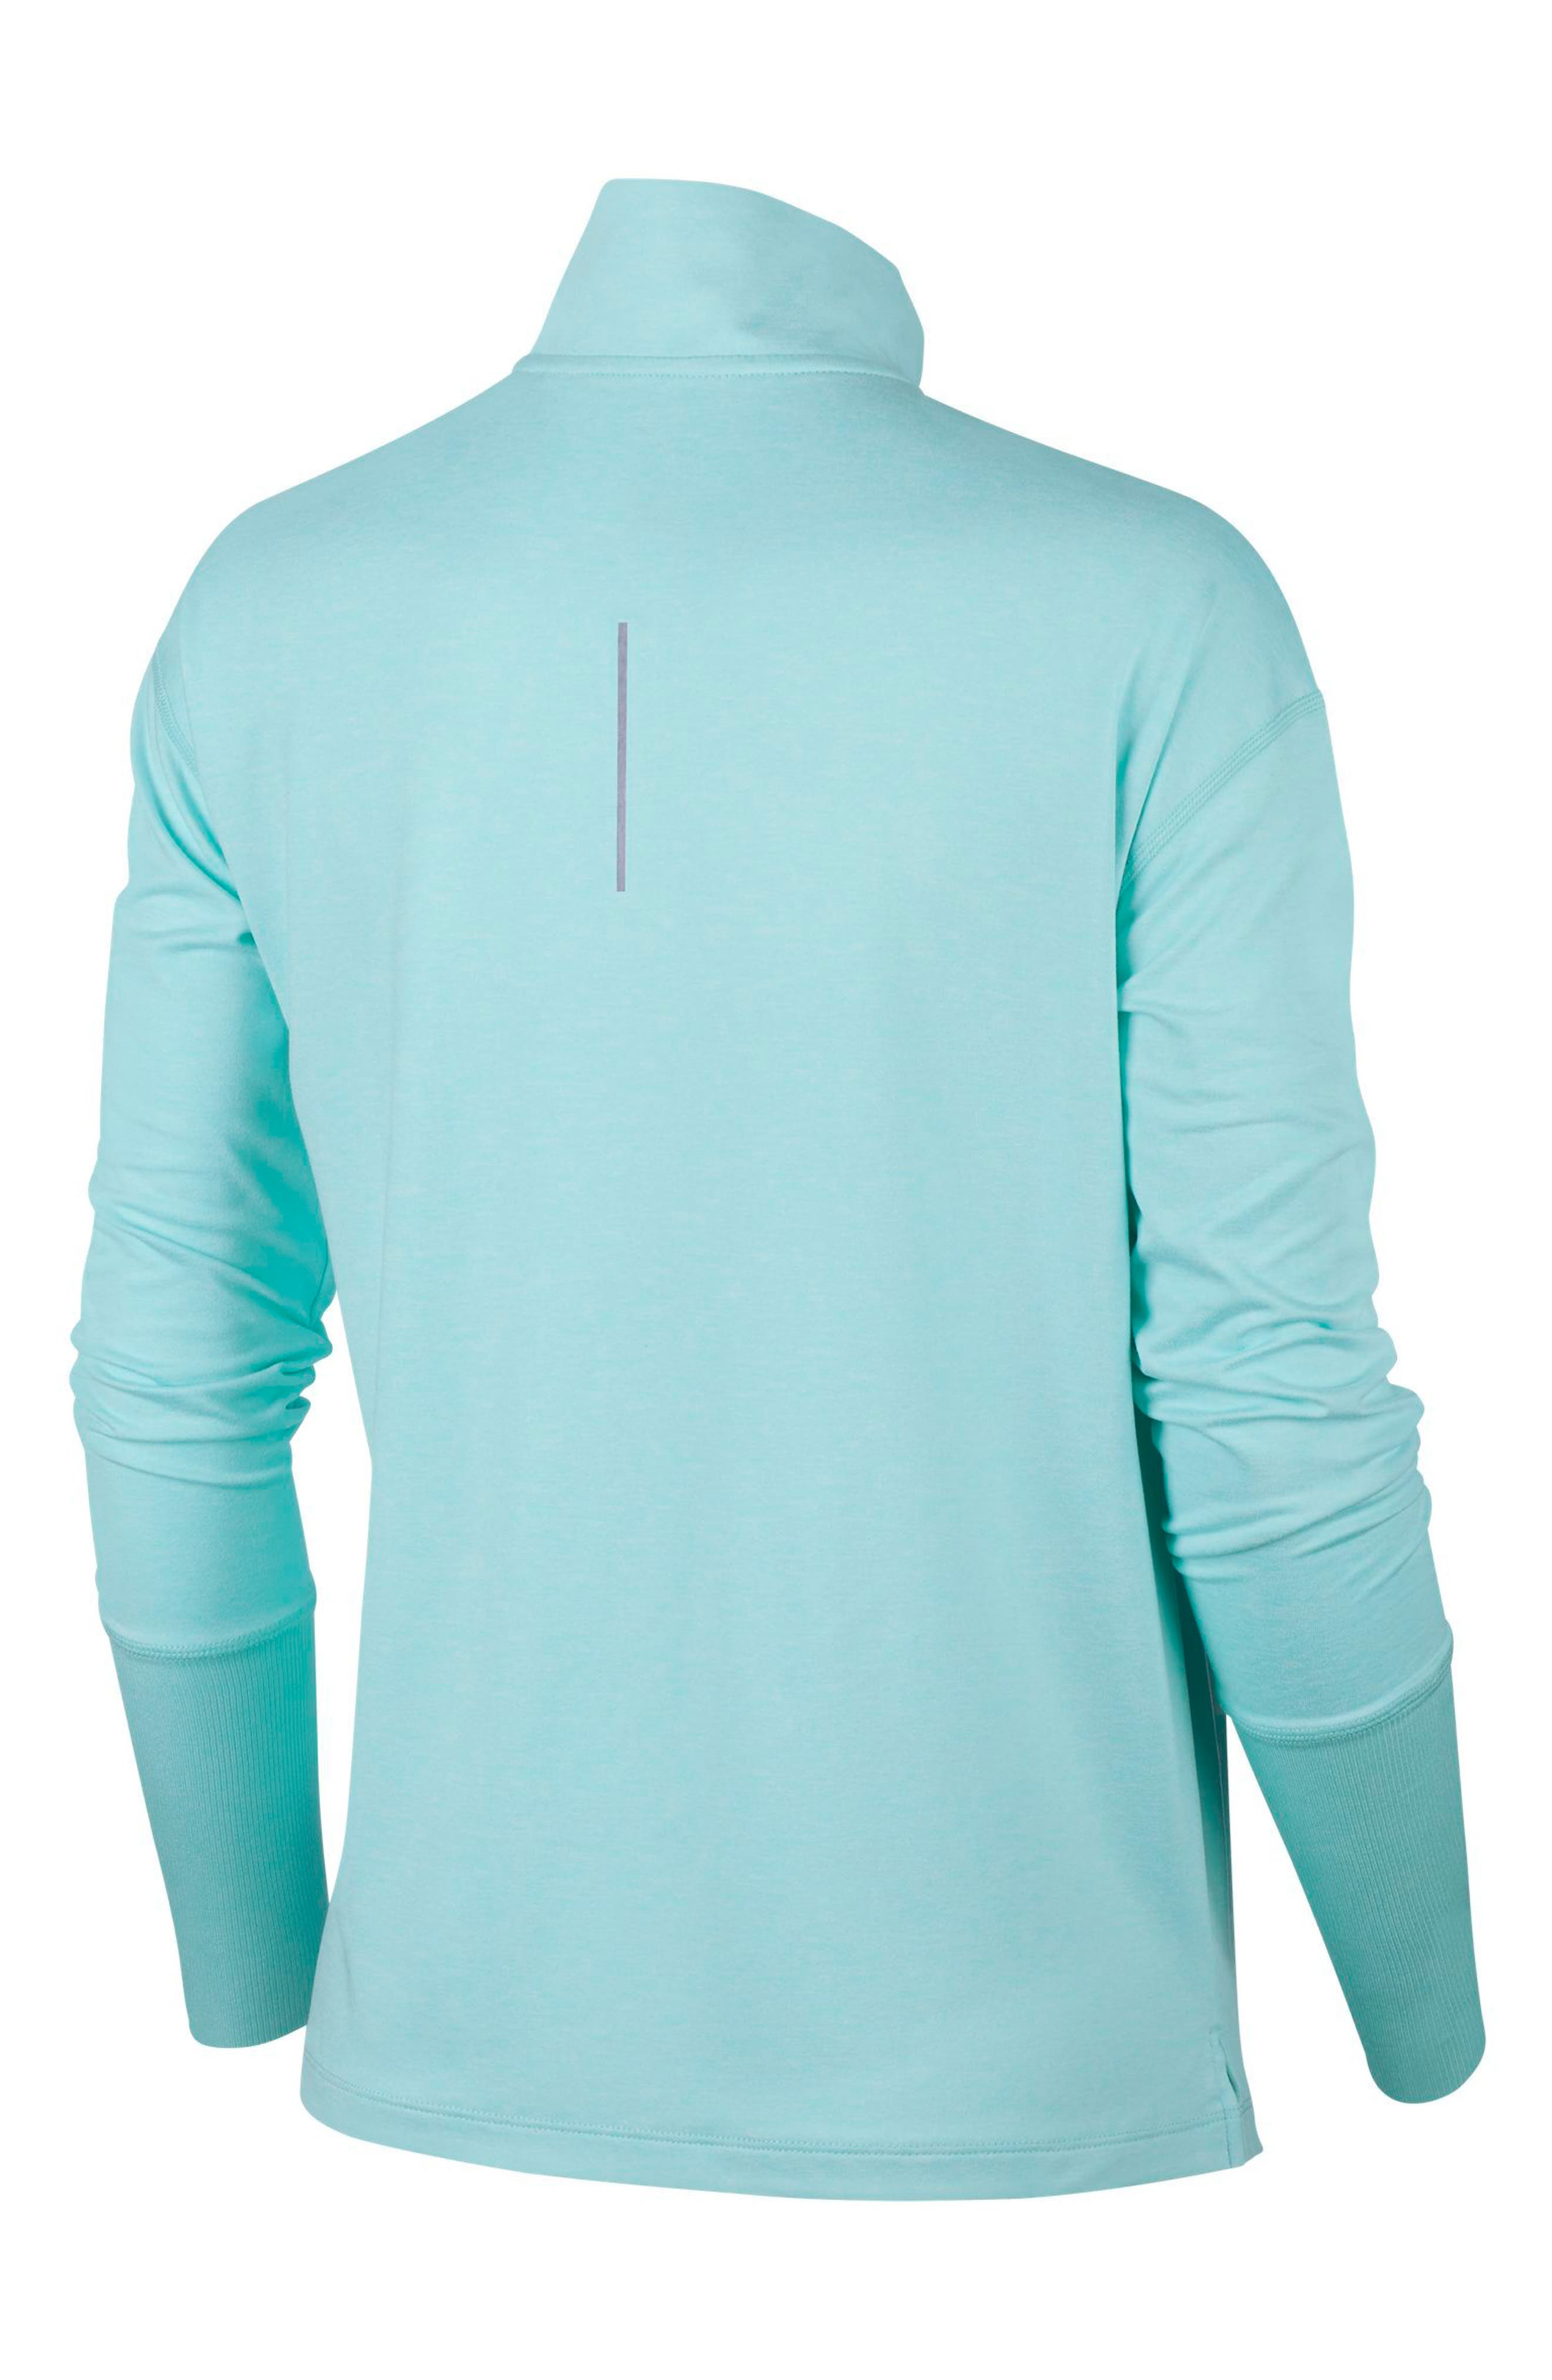 Element Long-Sleeve Running Top,                             Alternate thumbnail 8, color,                             TROPICAL TWIST/ TEAL TINT